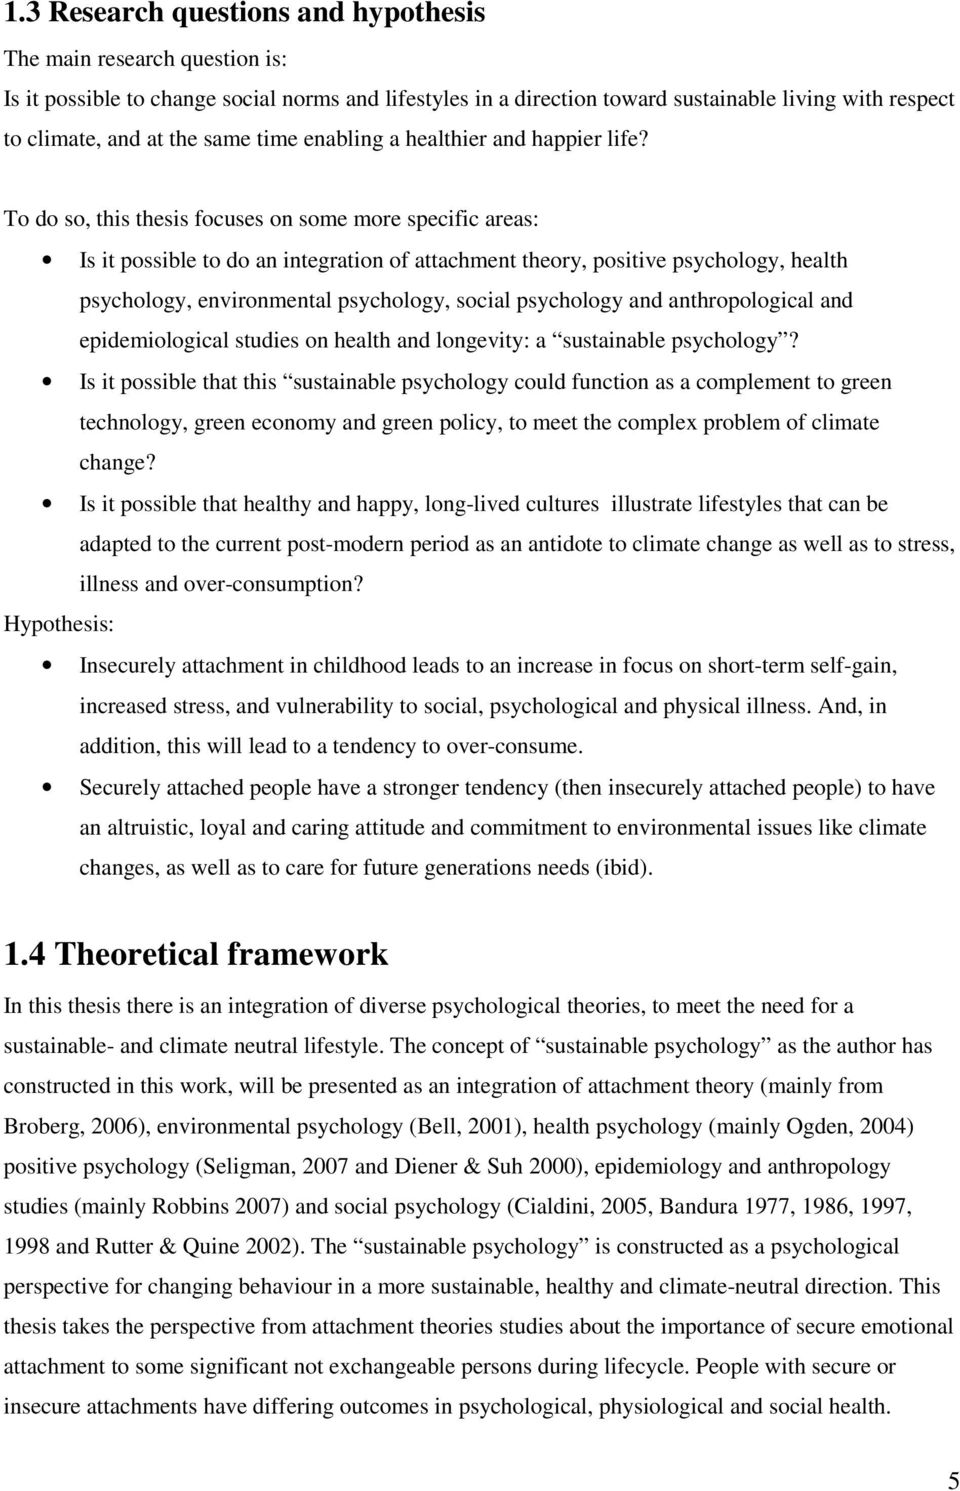 To do so, this thesis focuses on some more specific areas: Is it possible to do an integration of attachment theory, positive psychology, health psychology, environmental psychology, social